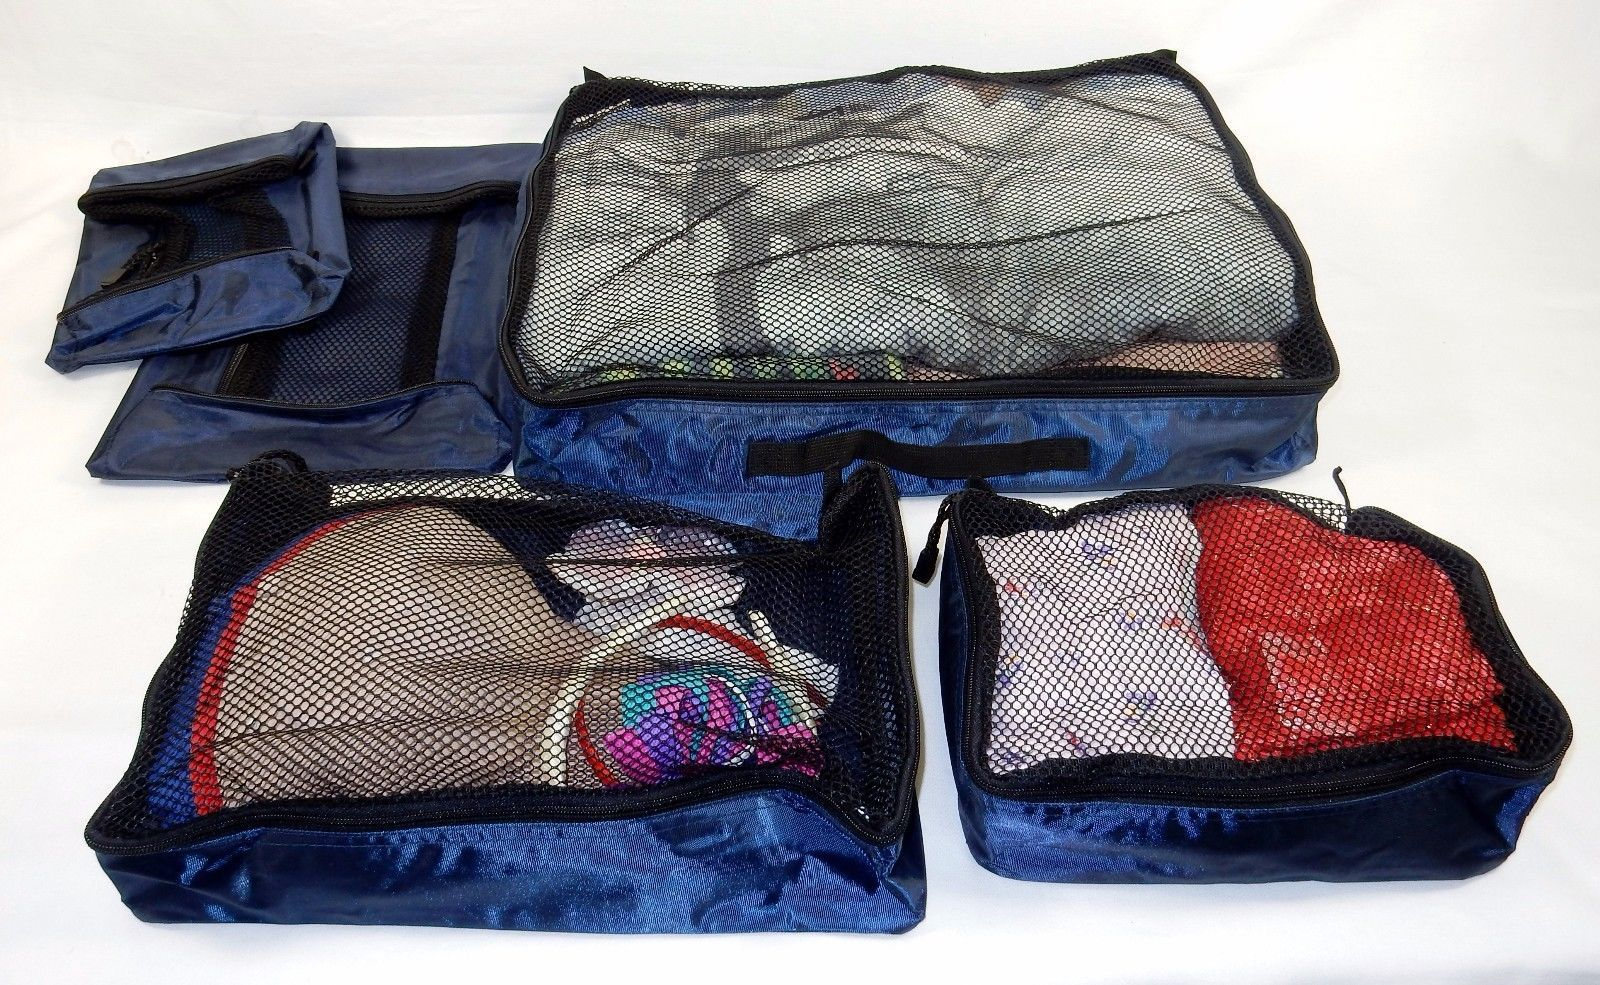 Suitcase Organizers ~ Set of 5 Zippered Packers, Keep Things Neat, Nylon, Navy